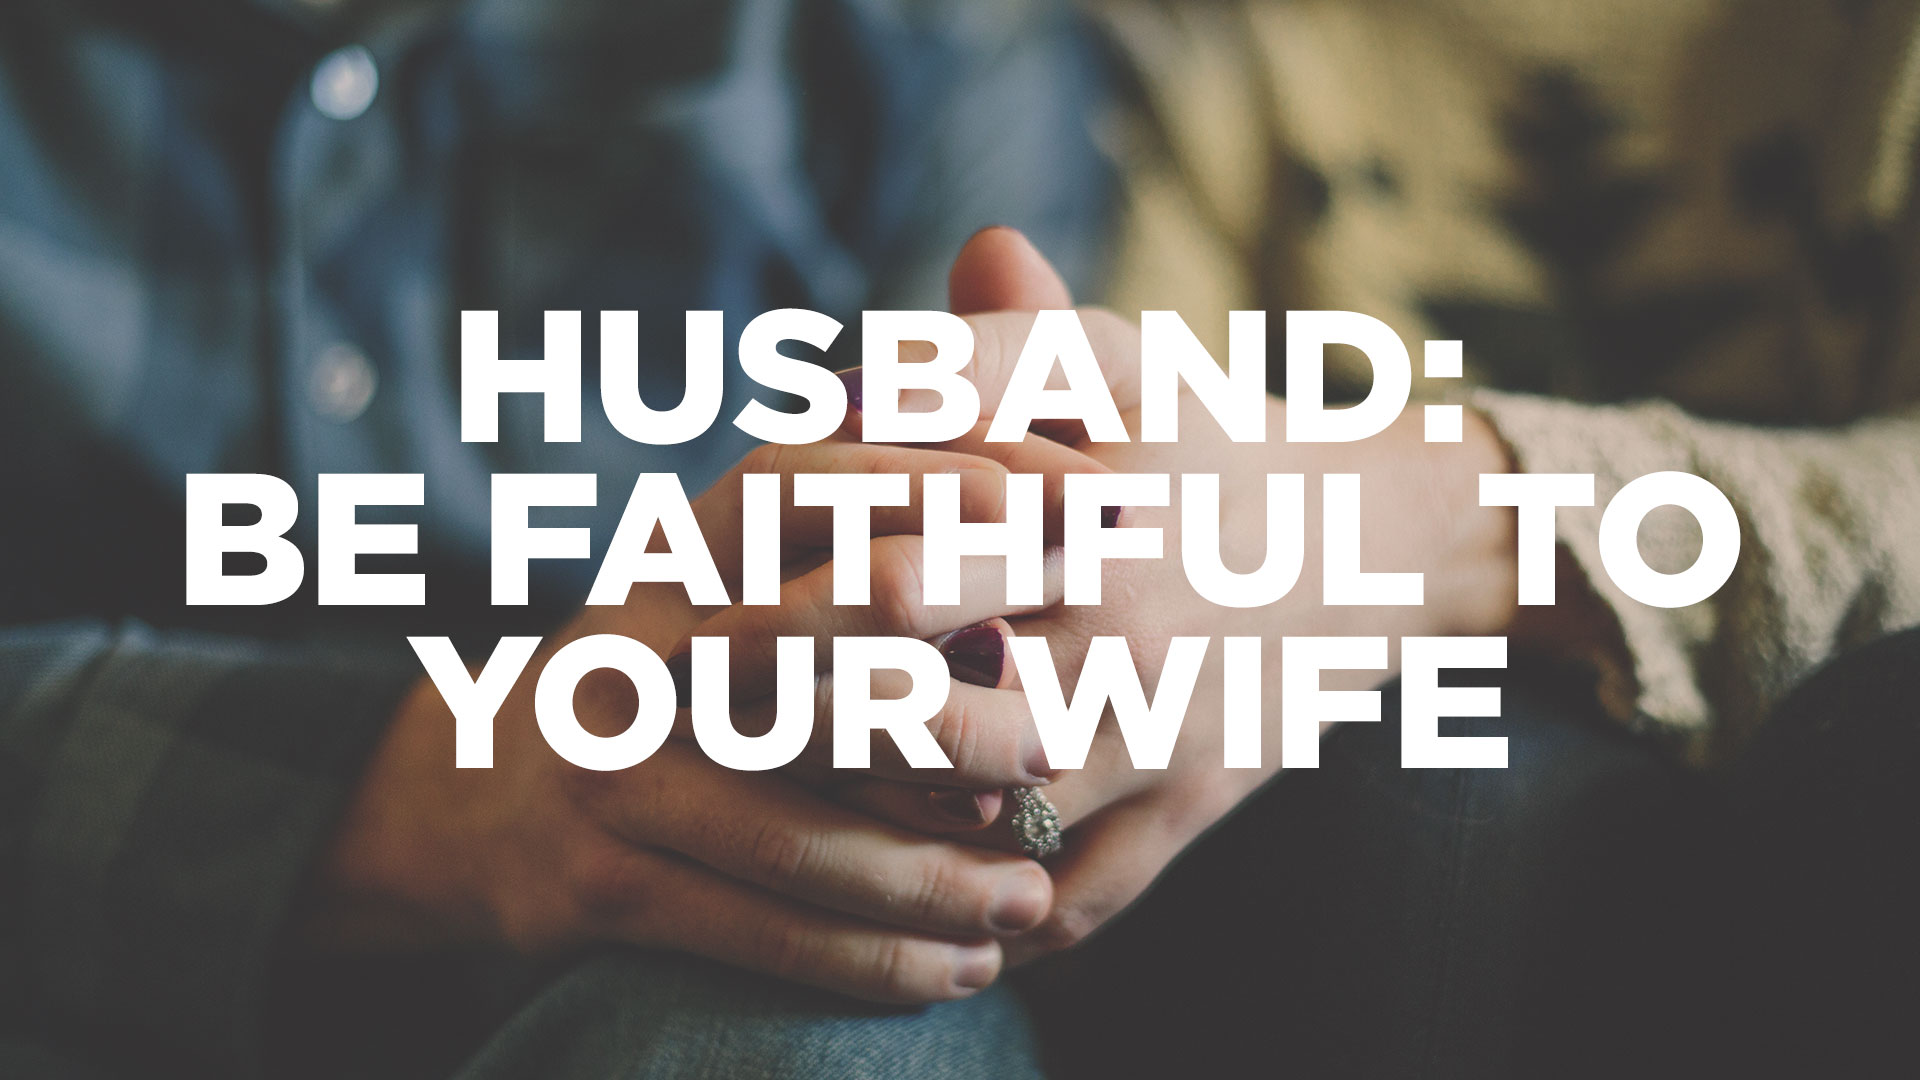 Faithful to your wife